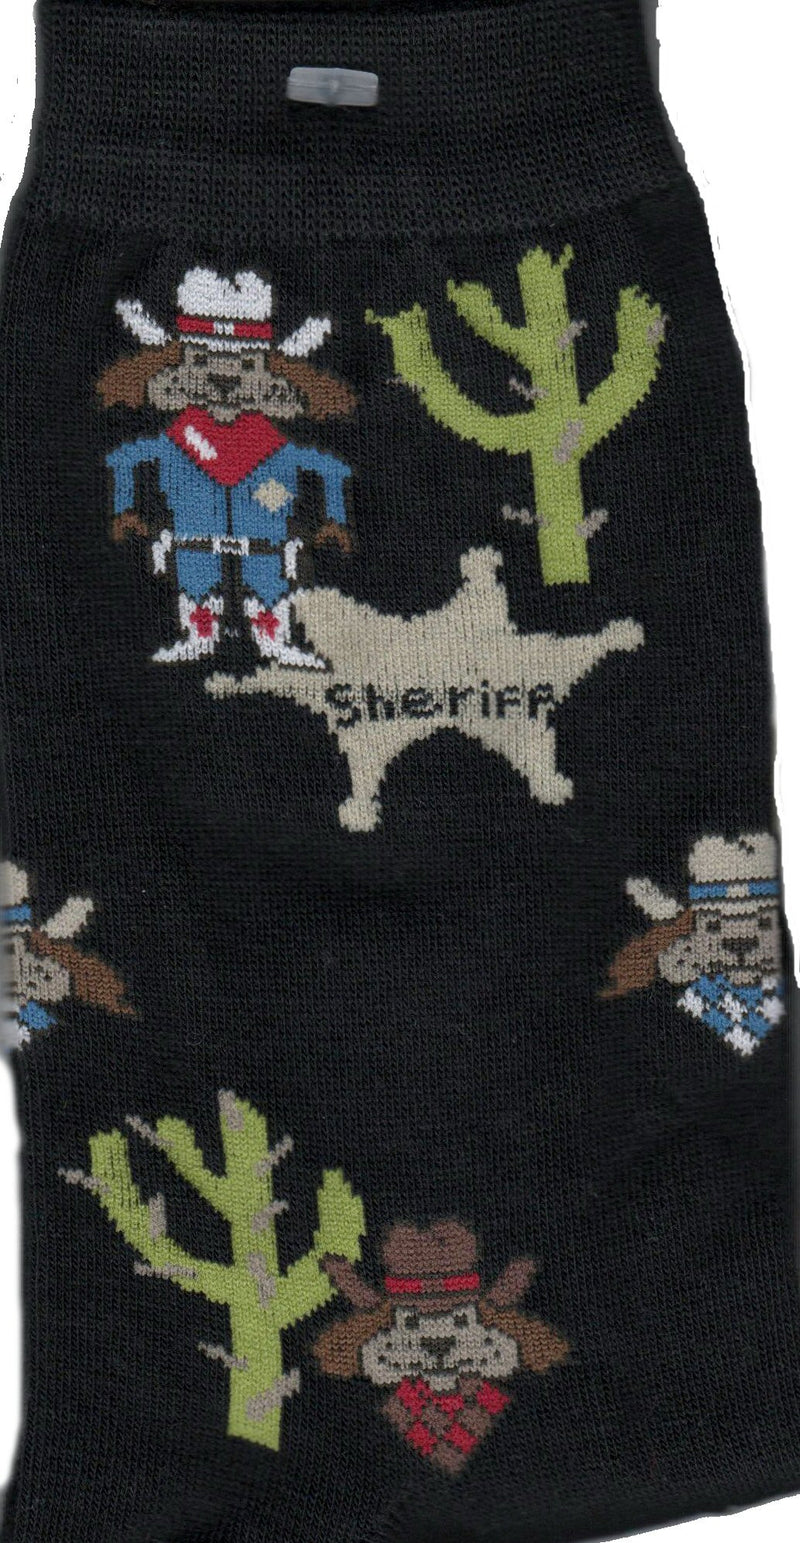 New Sheriff in Town on Black background show dogs as Bandits and one in Sheriff costume. Along with Green Cactus and a Tan Badge.